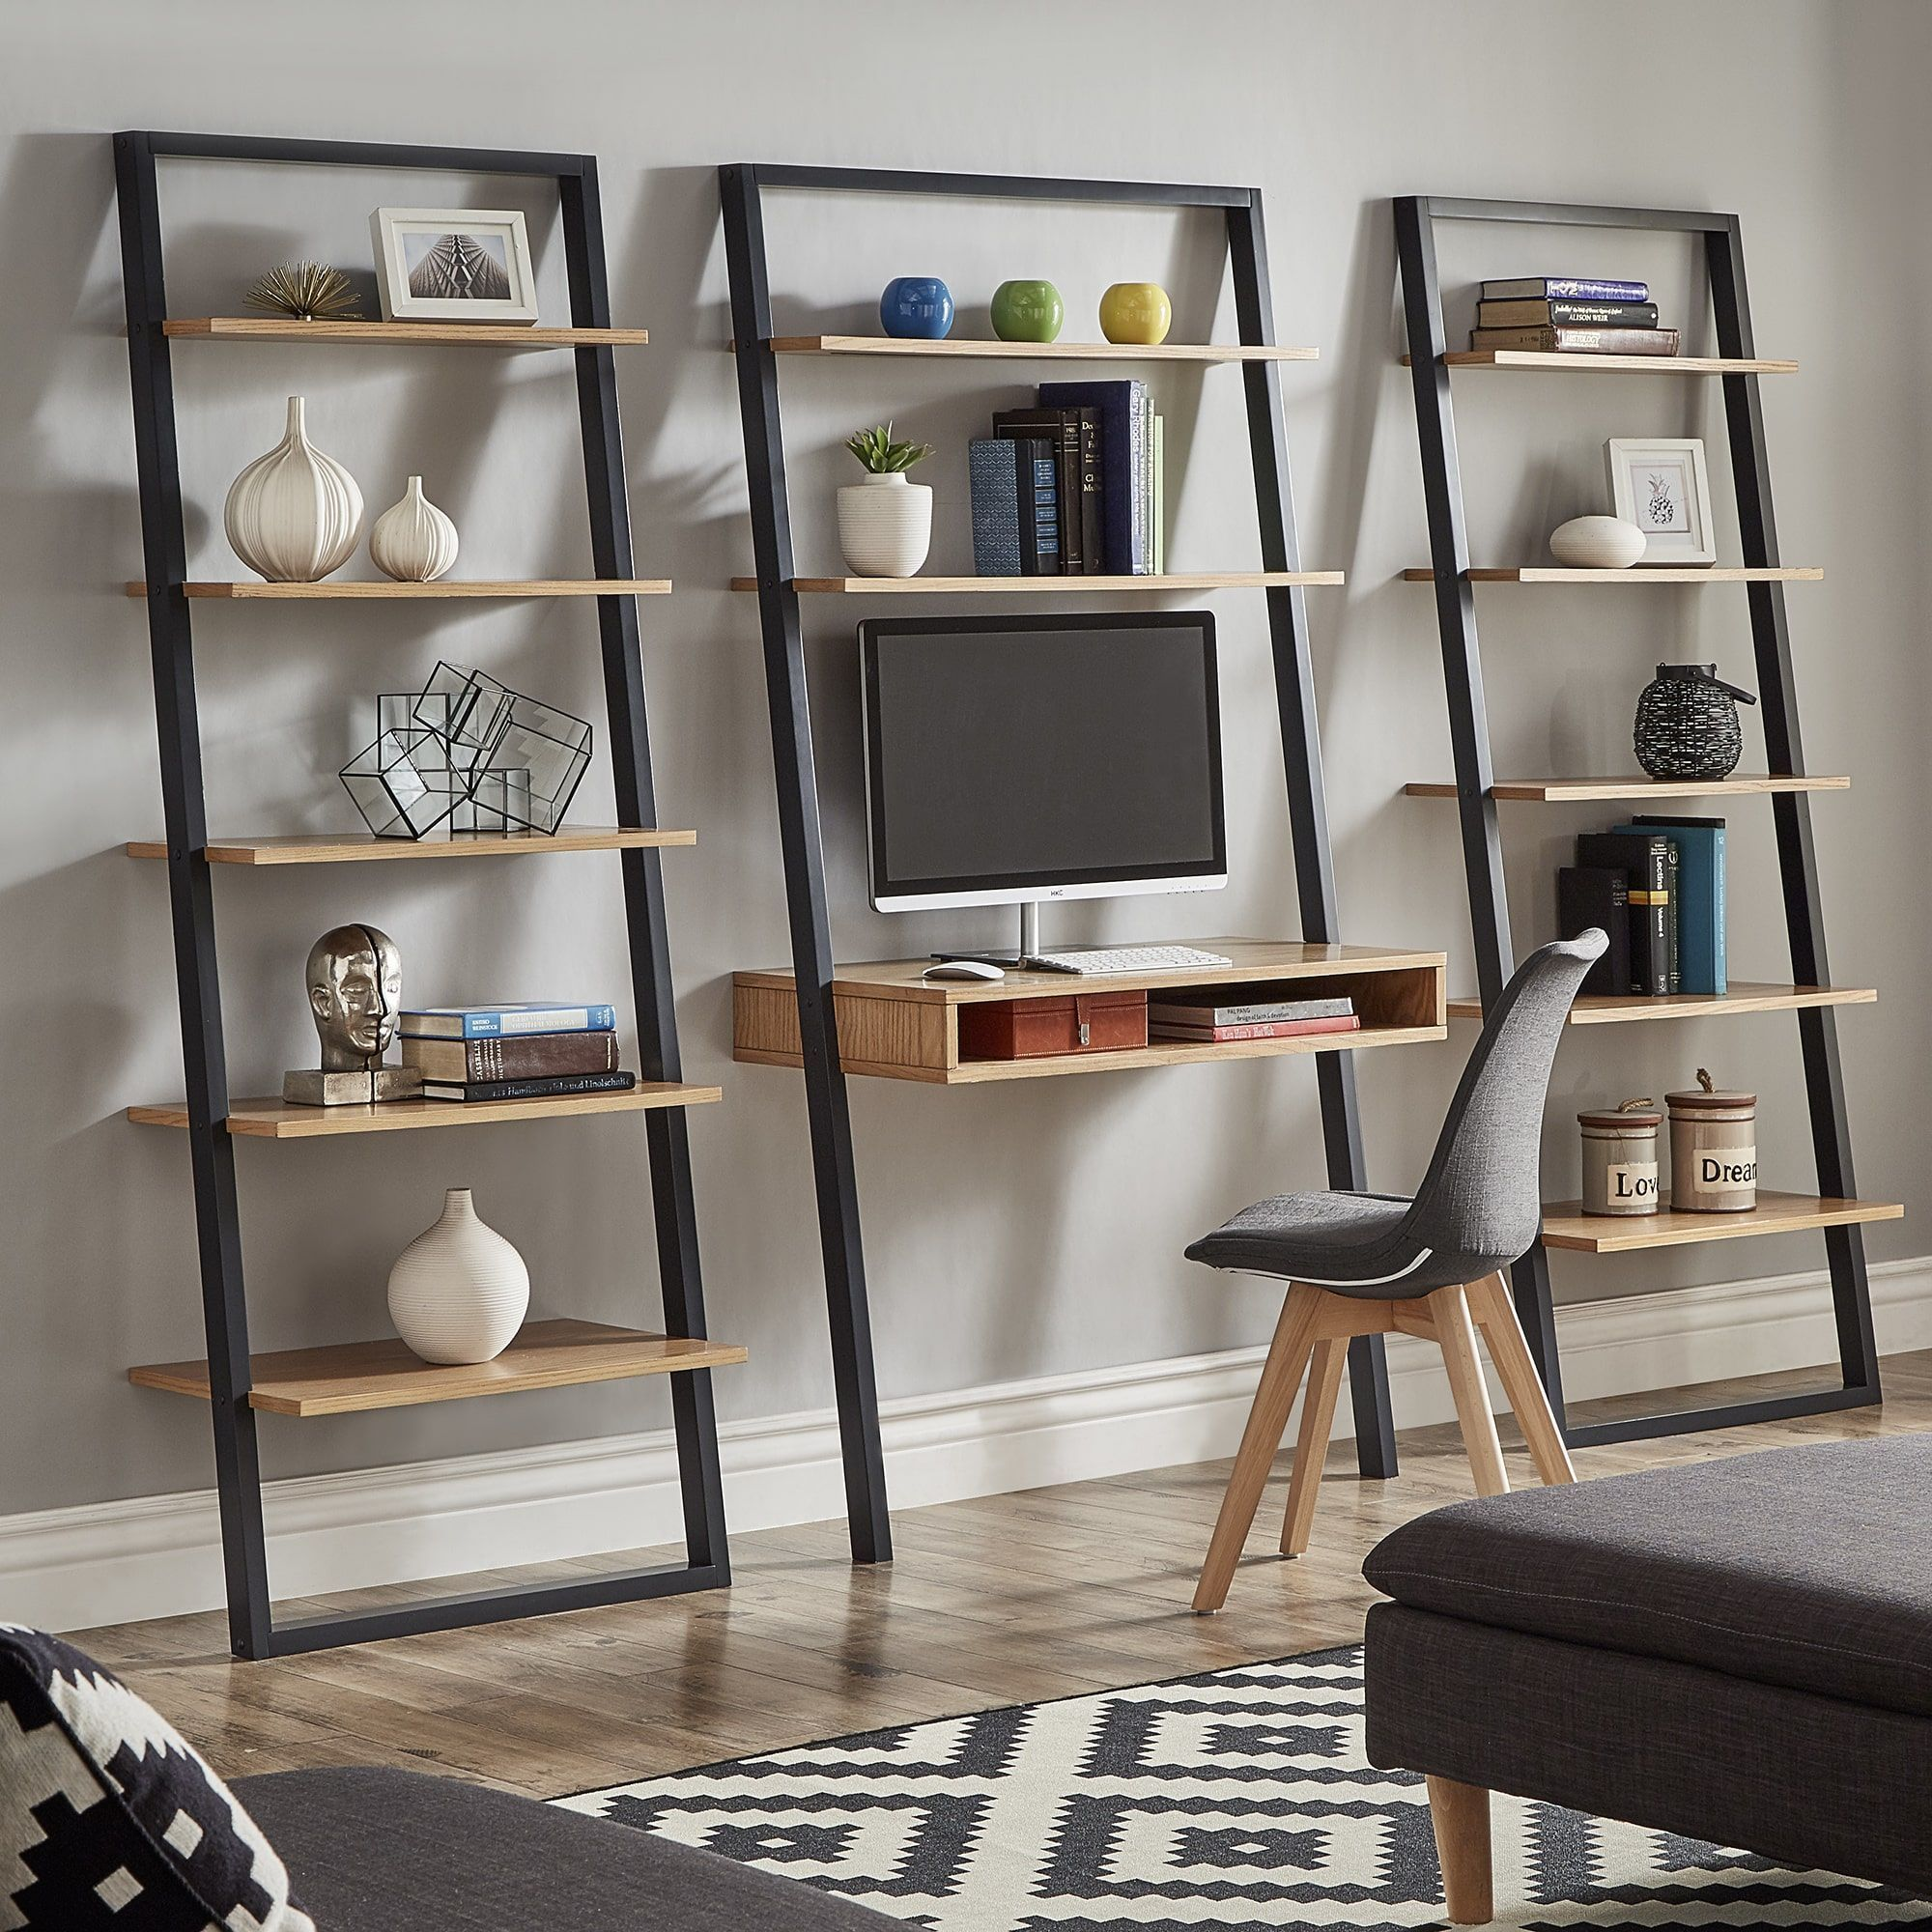 Ranell Leaning Desk Ladder Shelves By Inspire Q Modern Leaning Bookcase Black Muebles Leaning Desk Ladder Shelf Leaning Bookcase